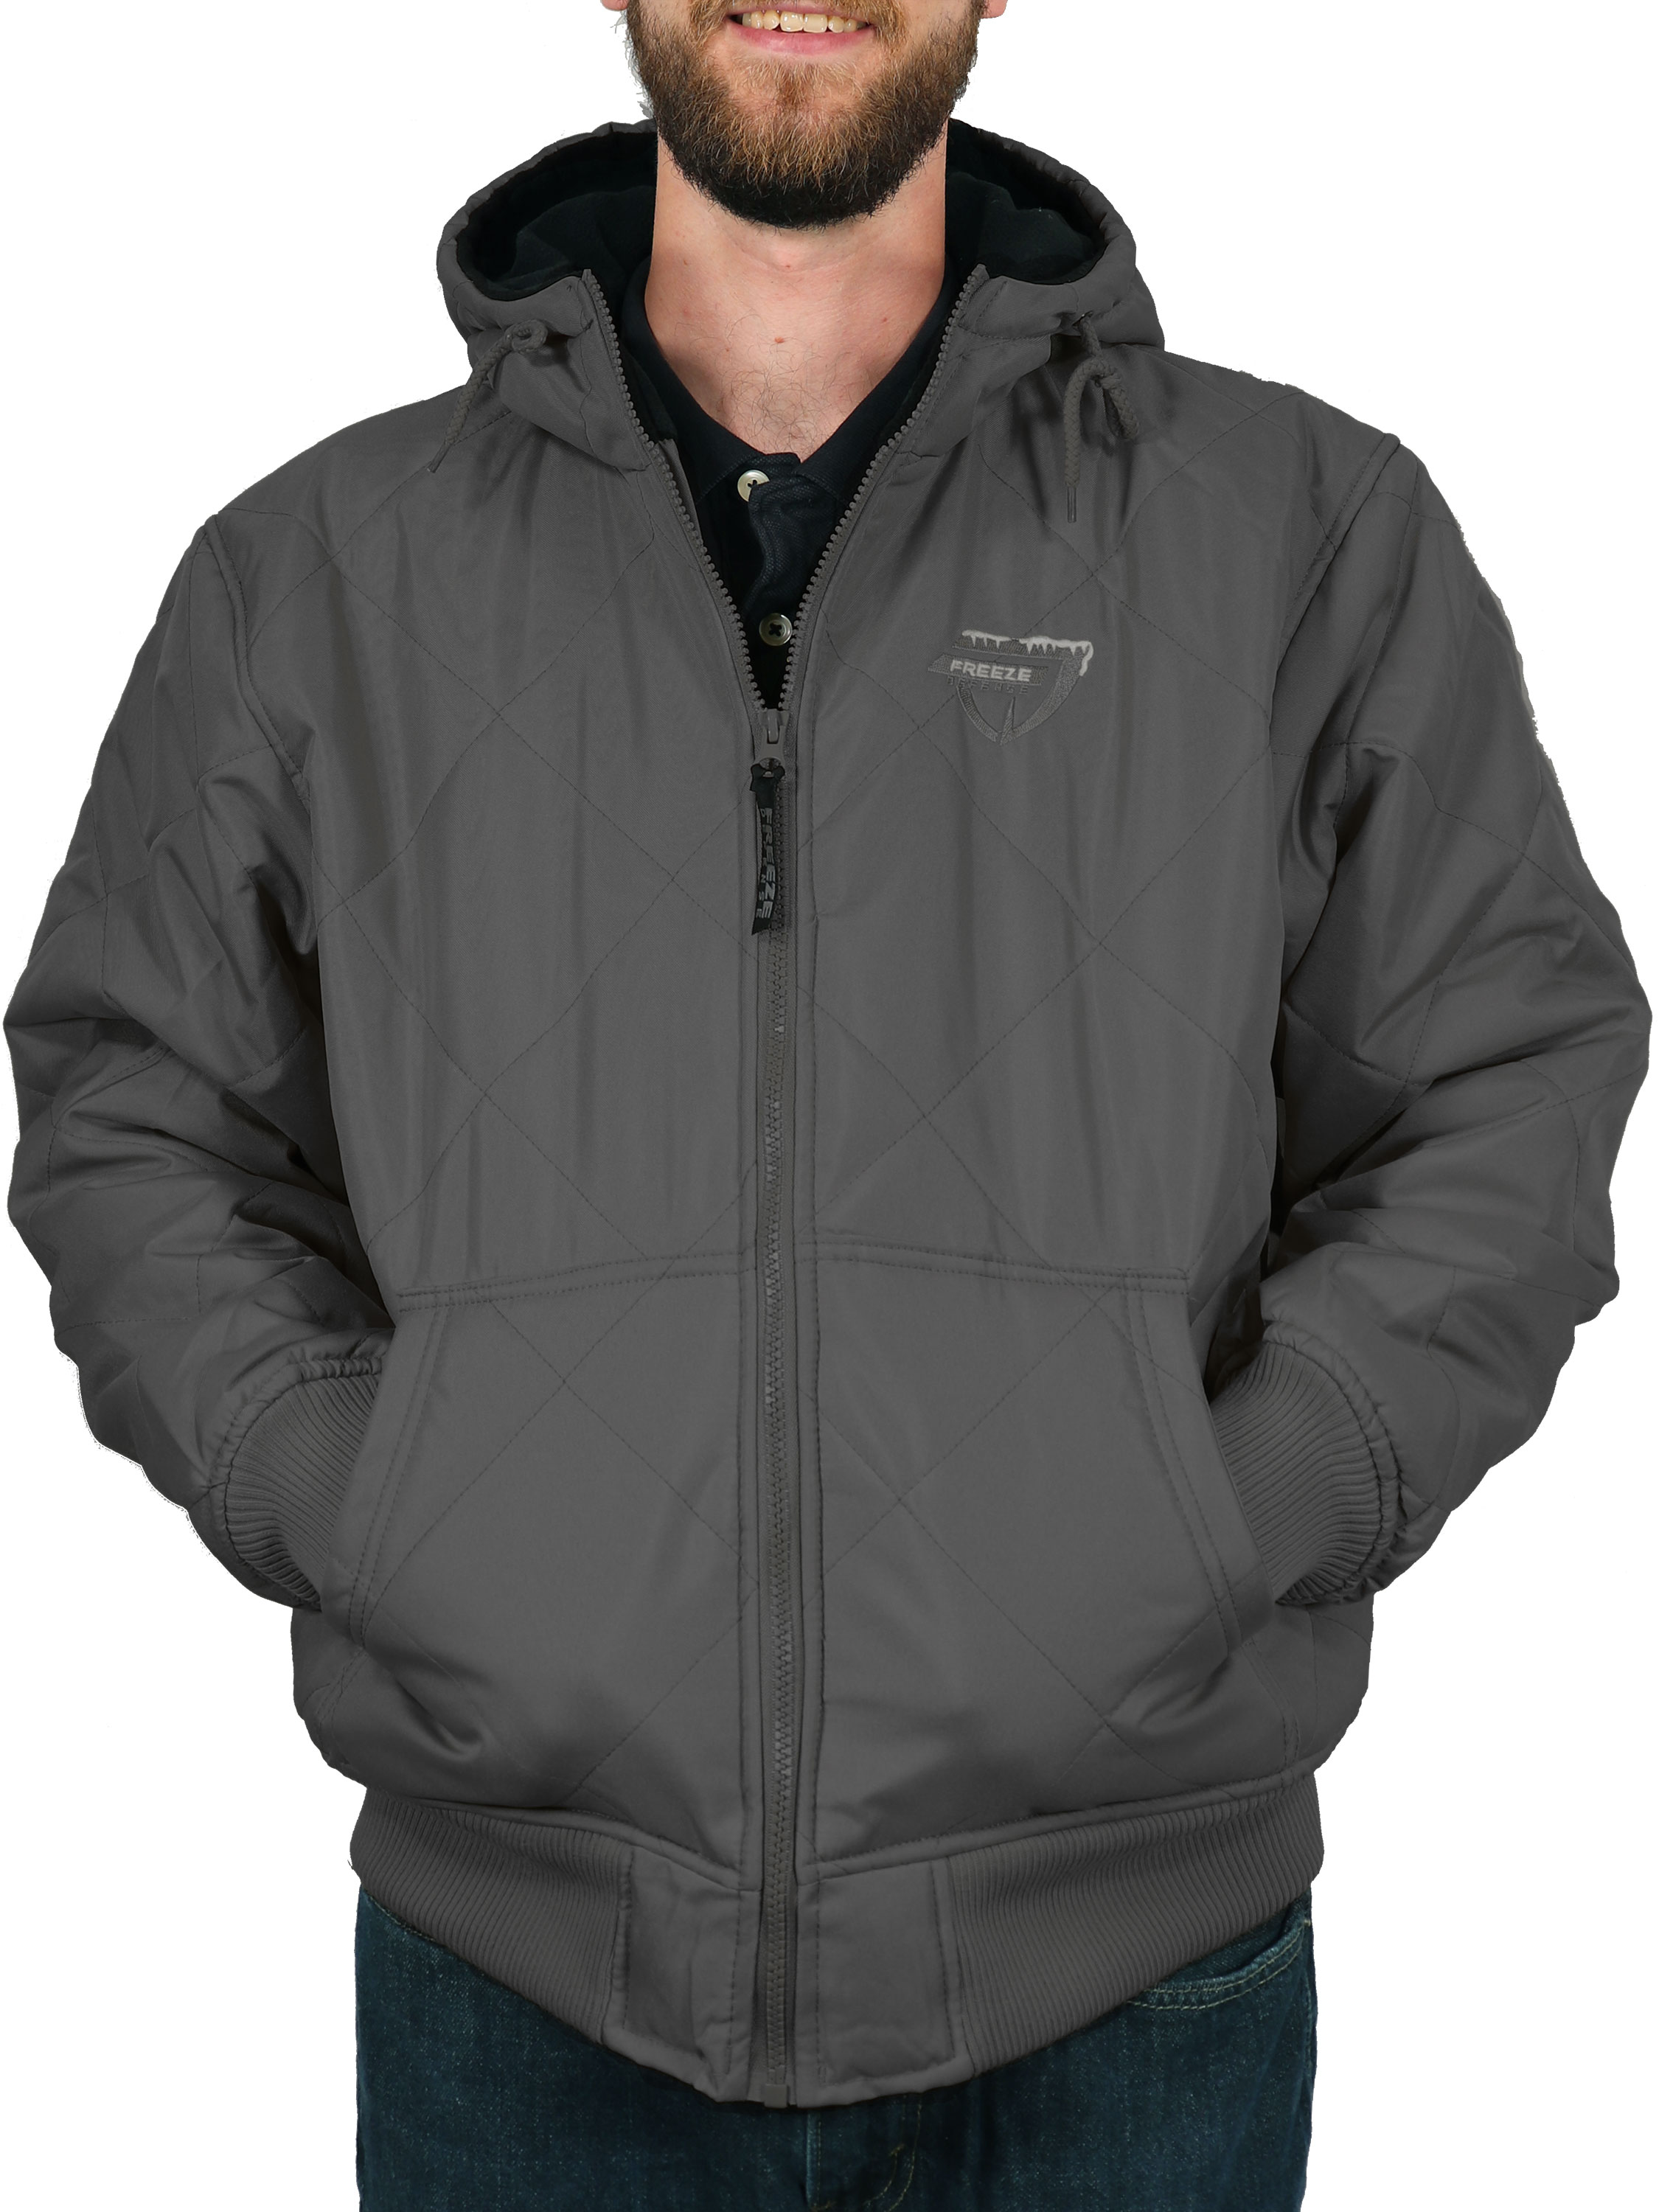 Mens Anti Pill Quilt Lined Padded Fleece Jacket Thick Warm Winter Full Zip Coat